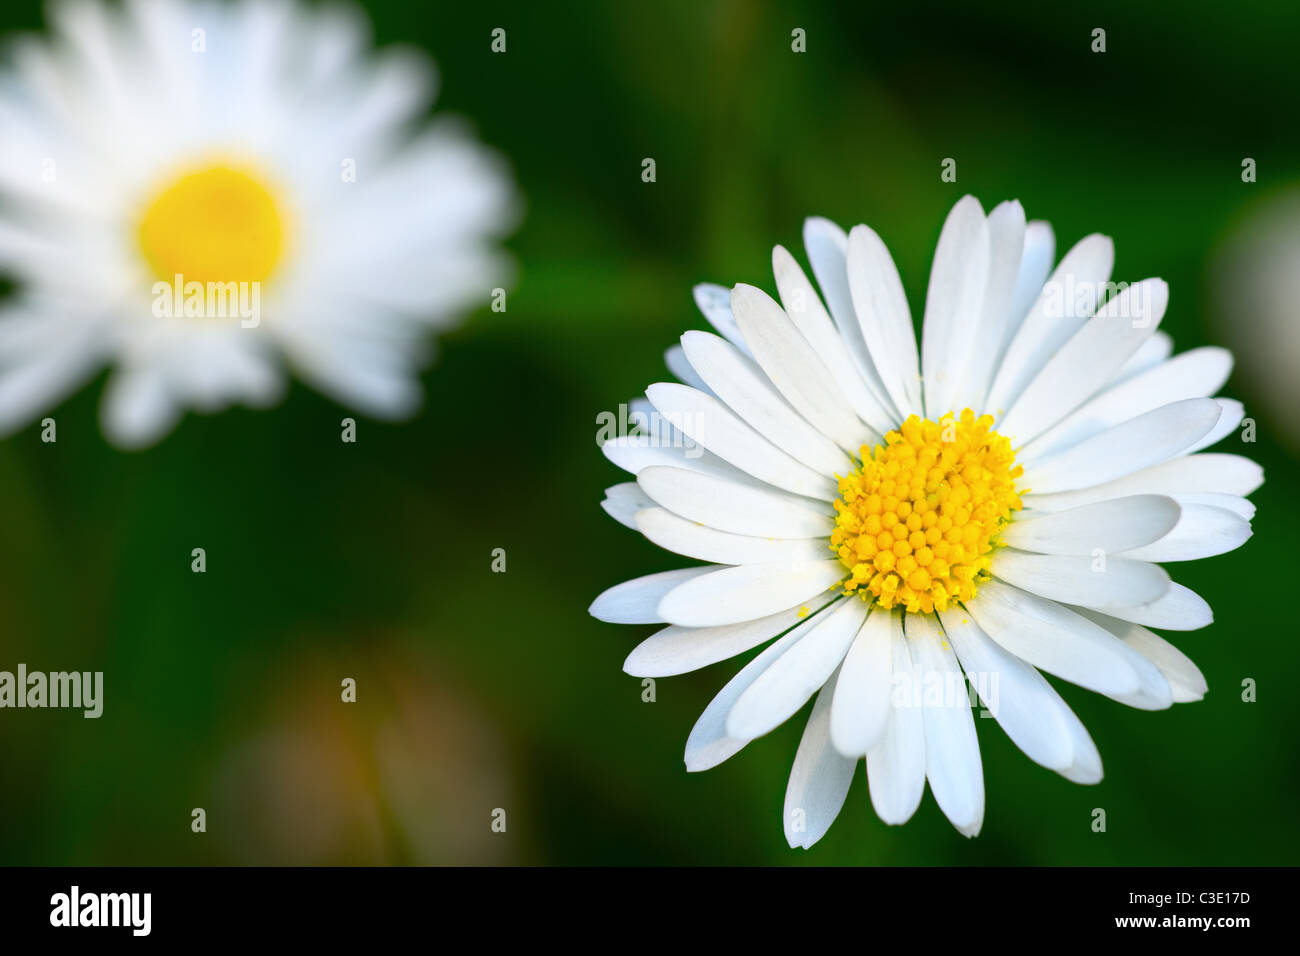 Top view of a common daisy flower head - Stock Image